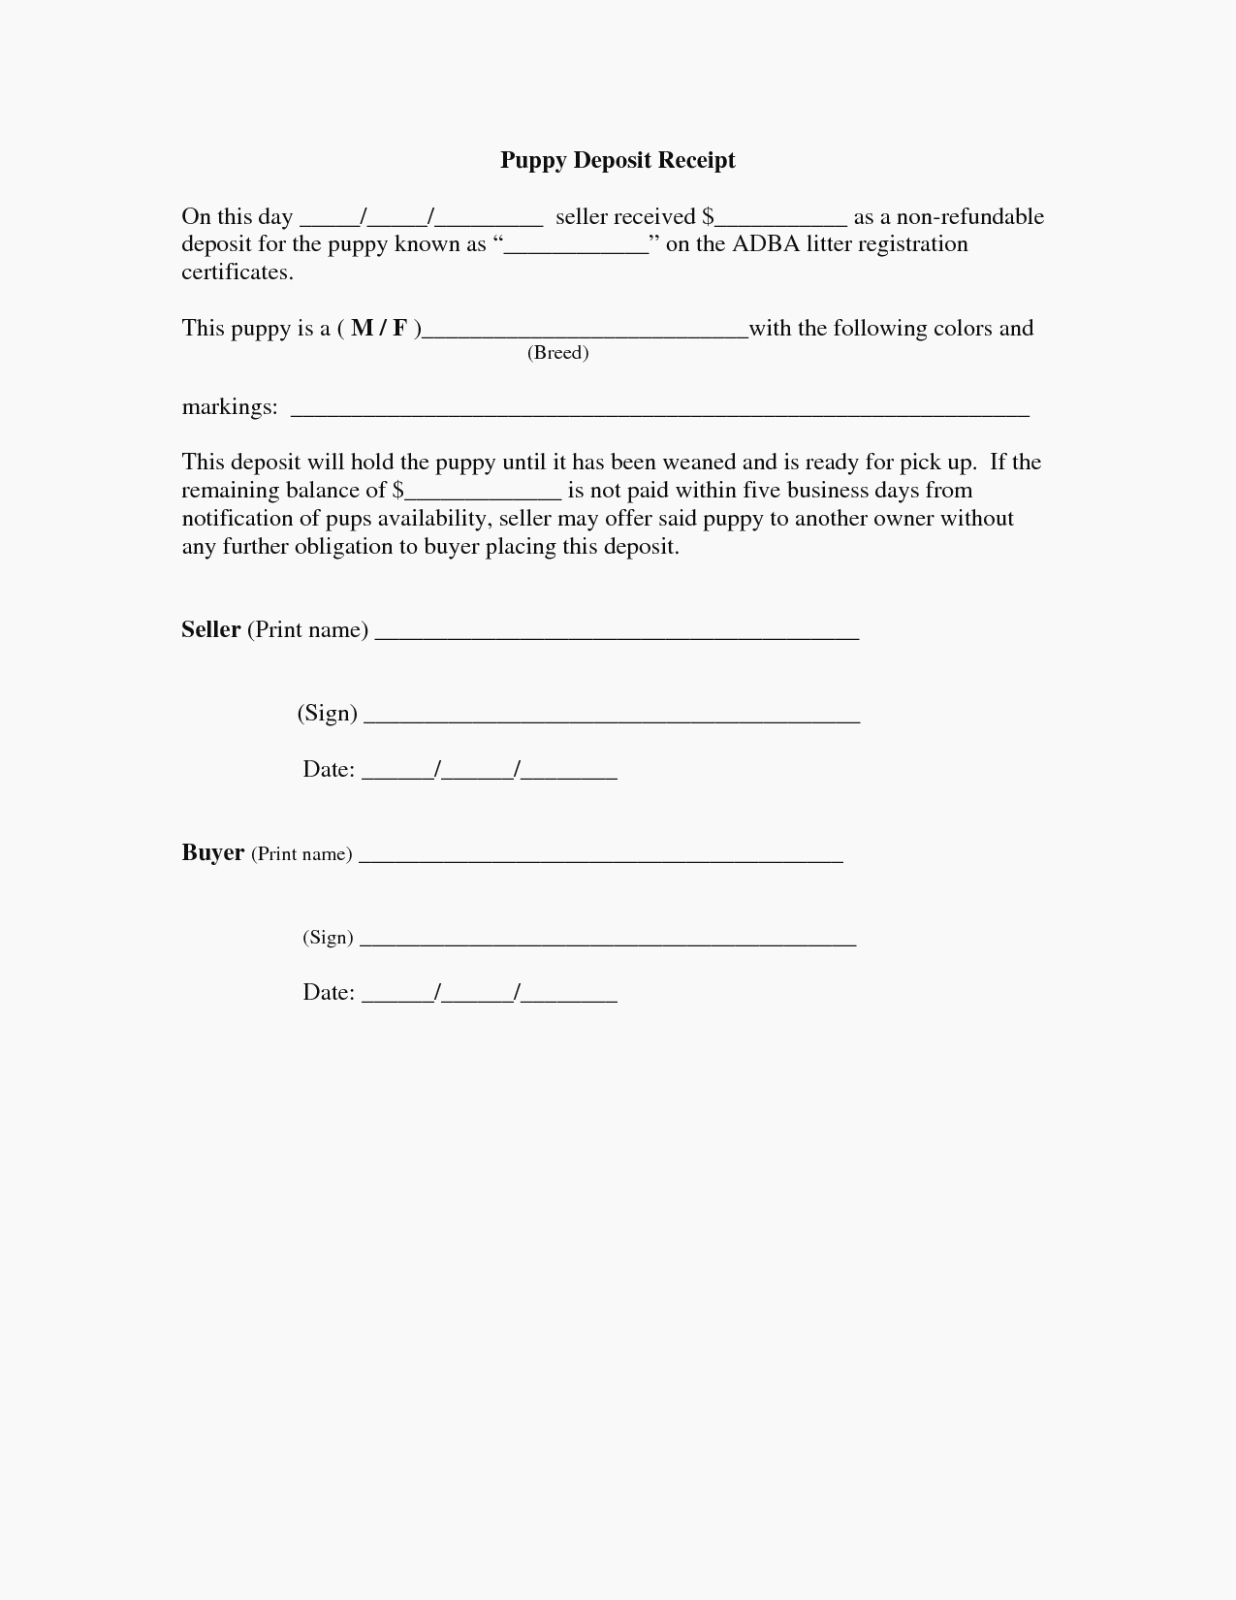 Non Refundable Deposit Agreement Template Fresh is Puppy Sales Receipt